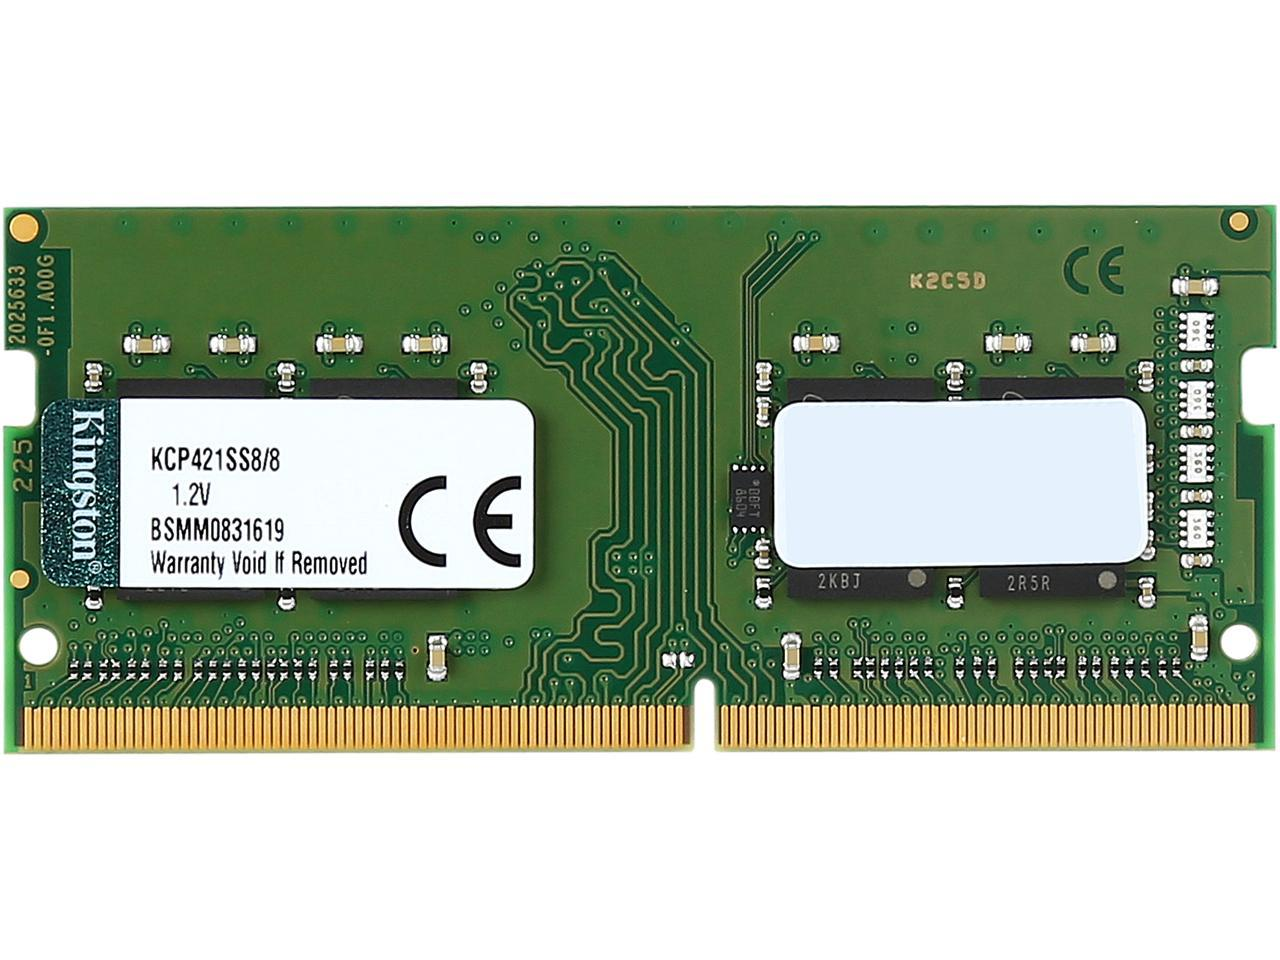 16GB Memory for Dell Precision 15 7000 PARTS-QUICK Brand 7510 Mobile Workstation DDR4 2133MHz SODIMM RAM